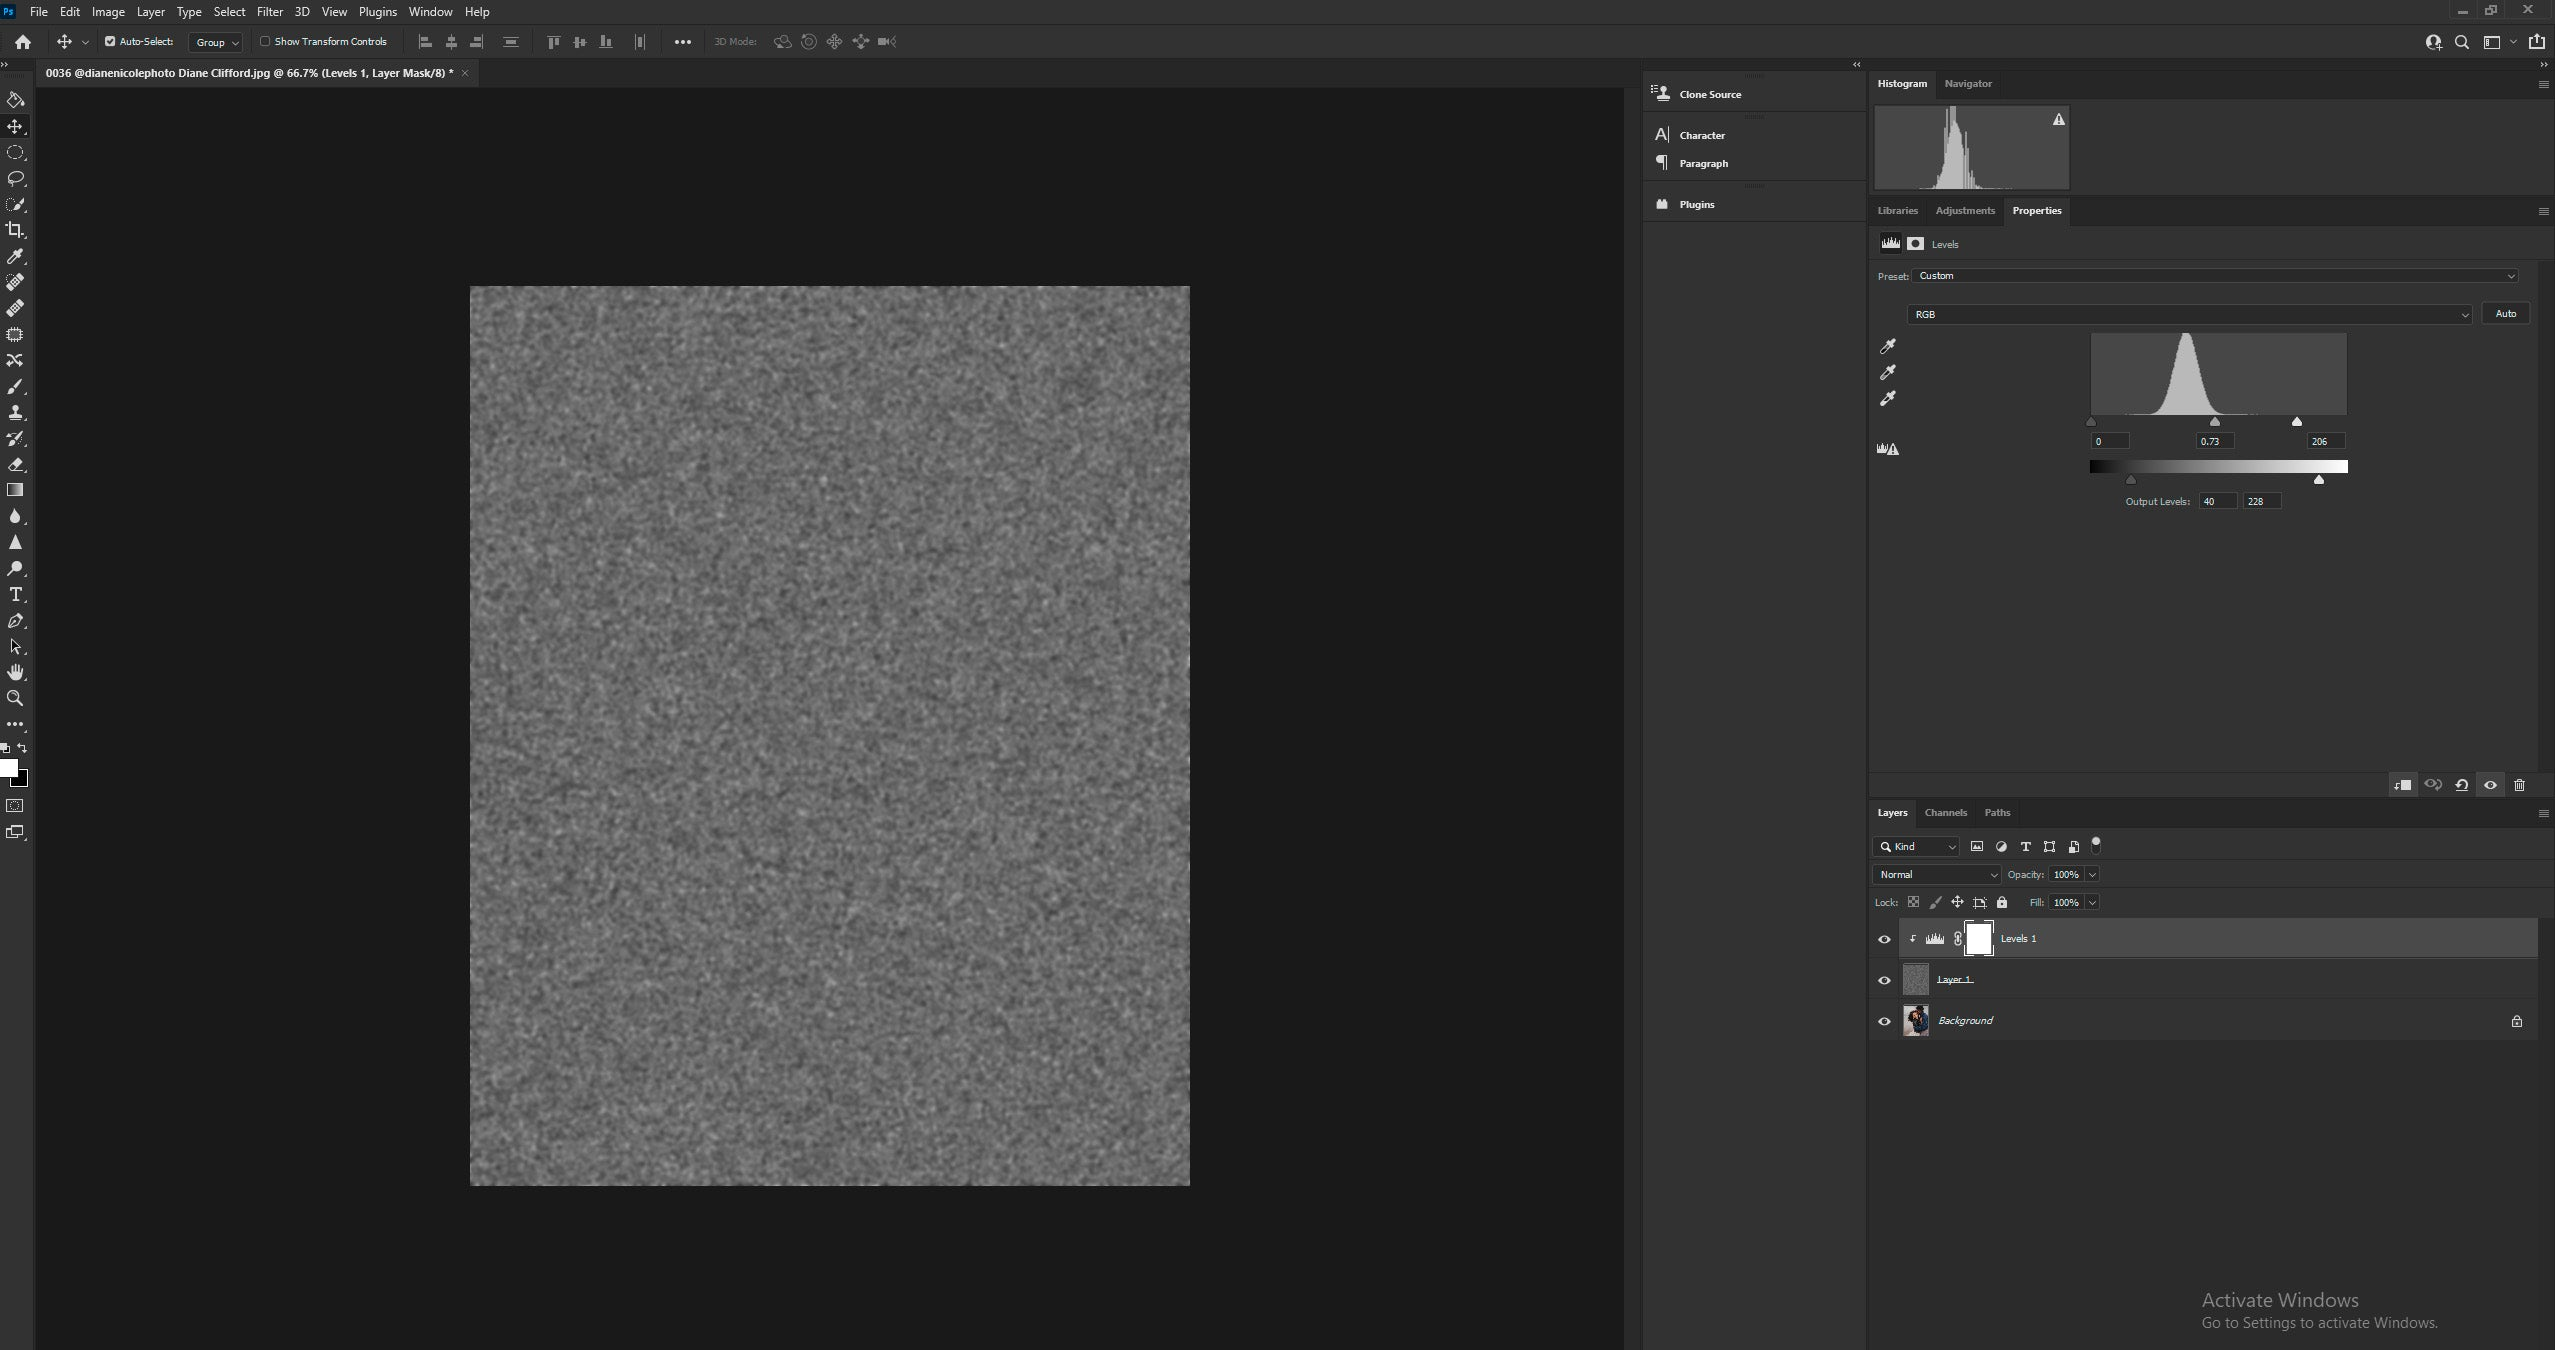 Using Levels Command to reduce and brighten the noise